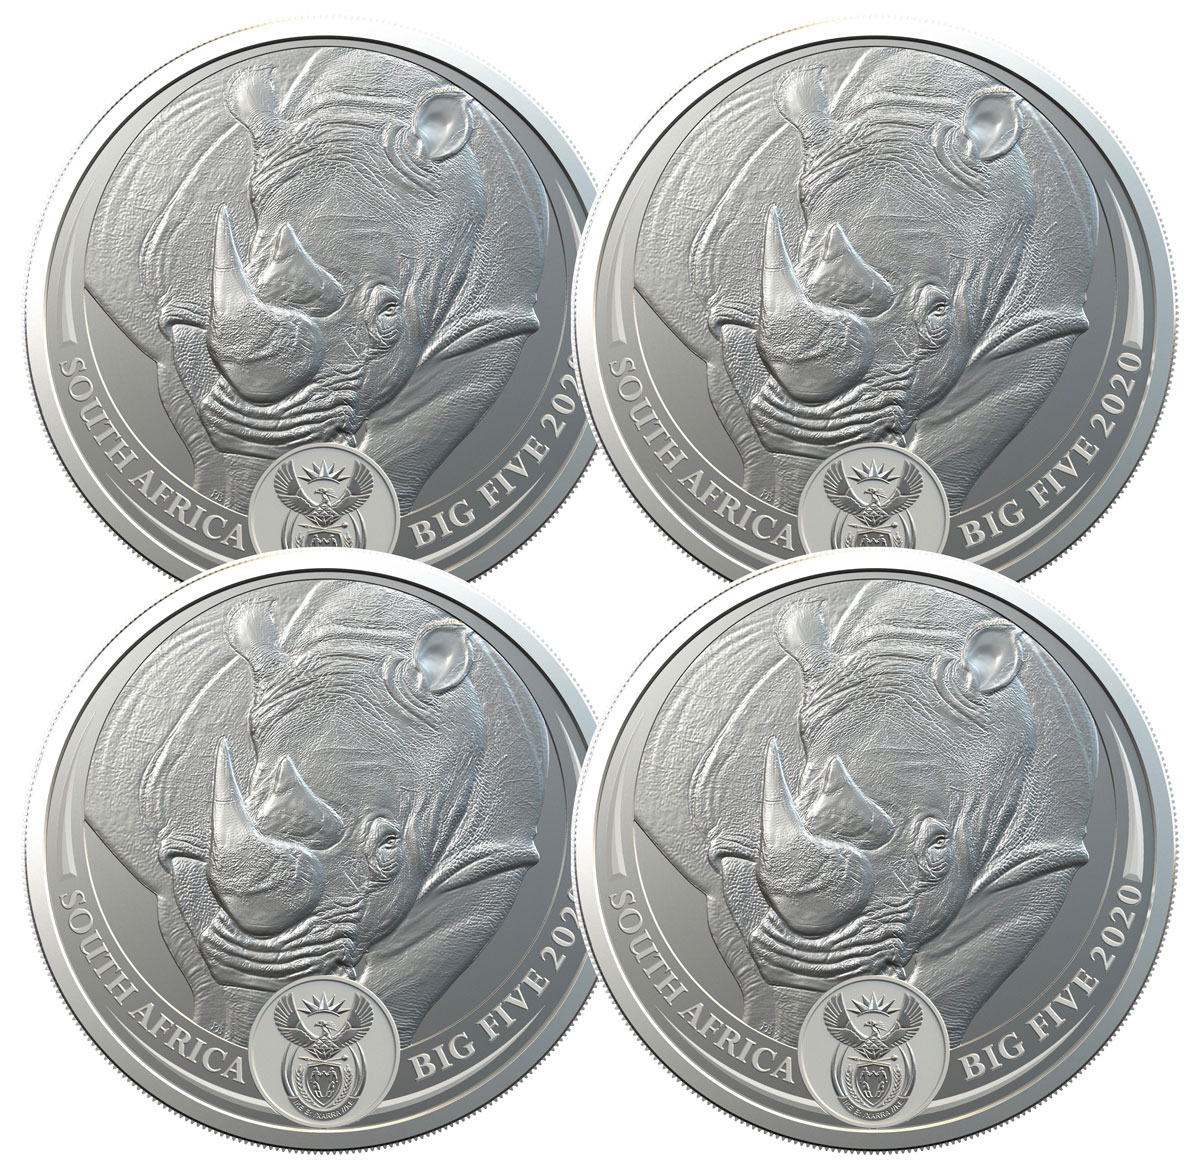 4-Pack - 2020 South Africa Big 5 - African Black Rhino 1 oz Silver R5 Coins with Coin Card